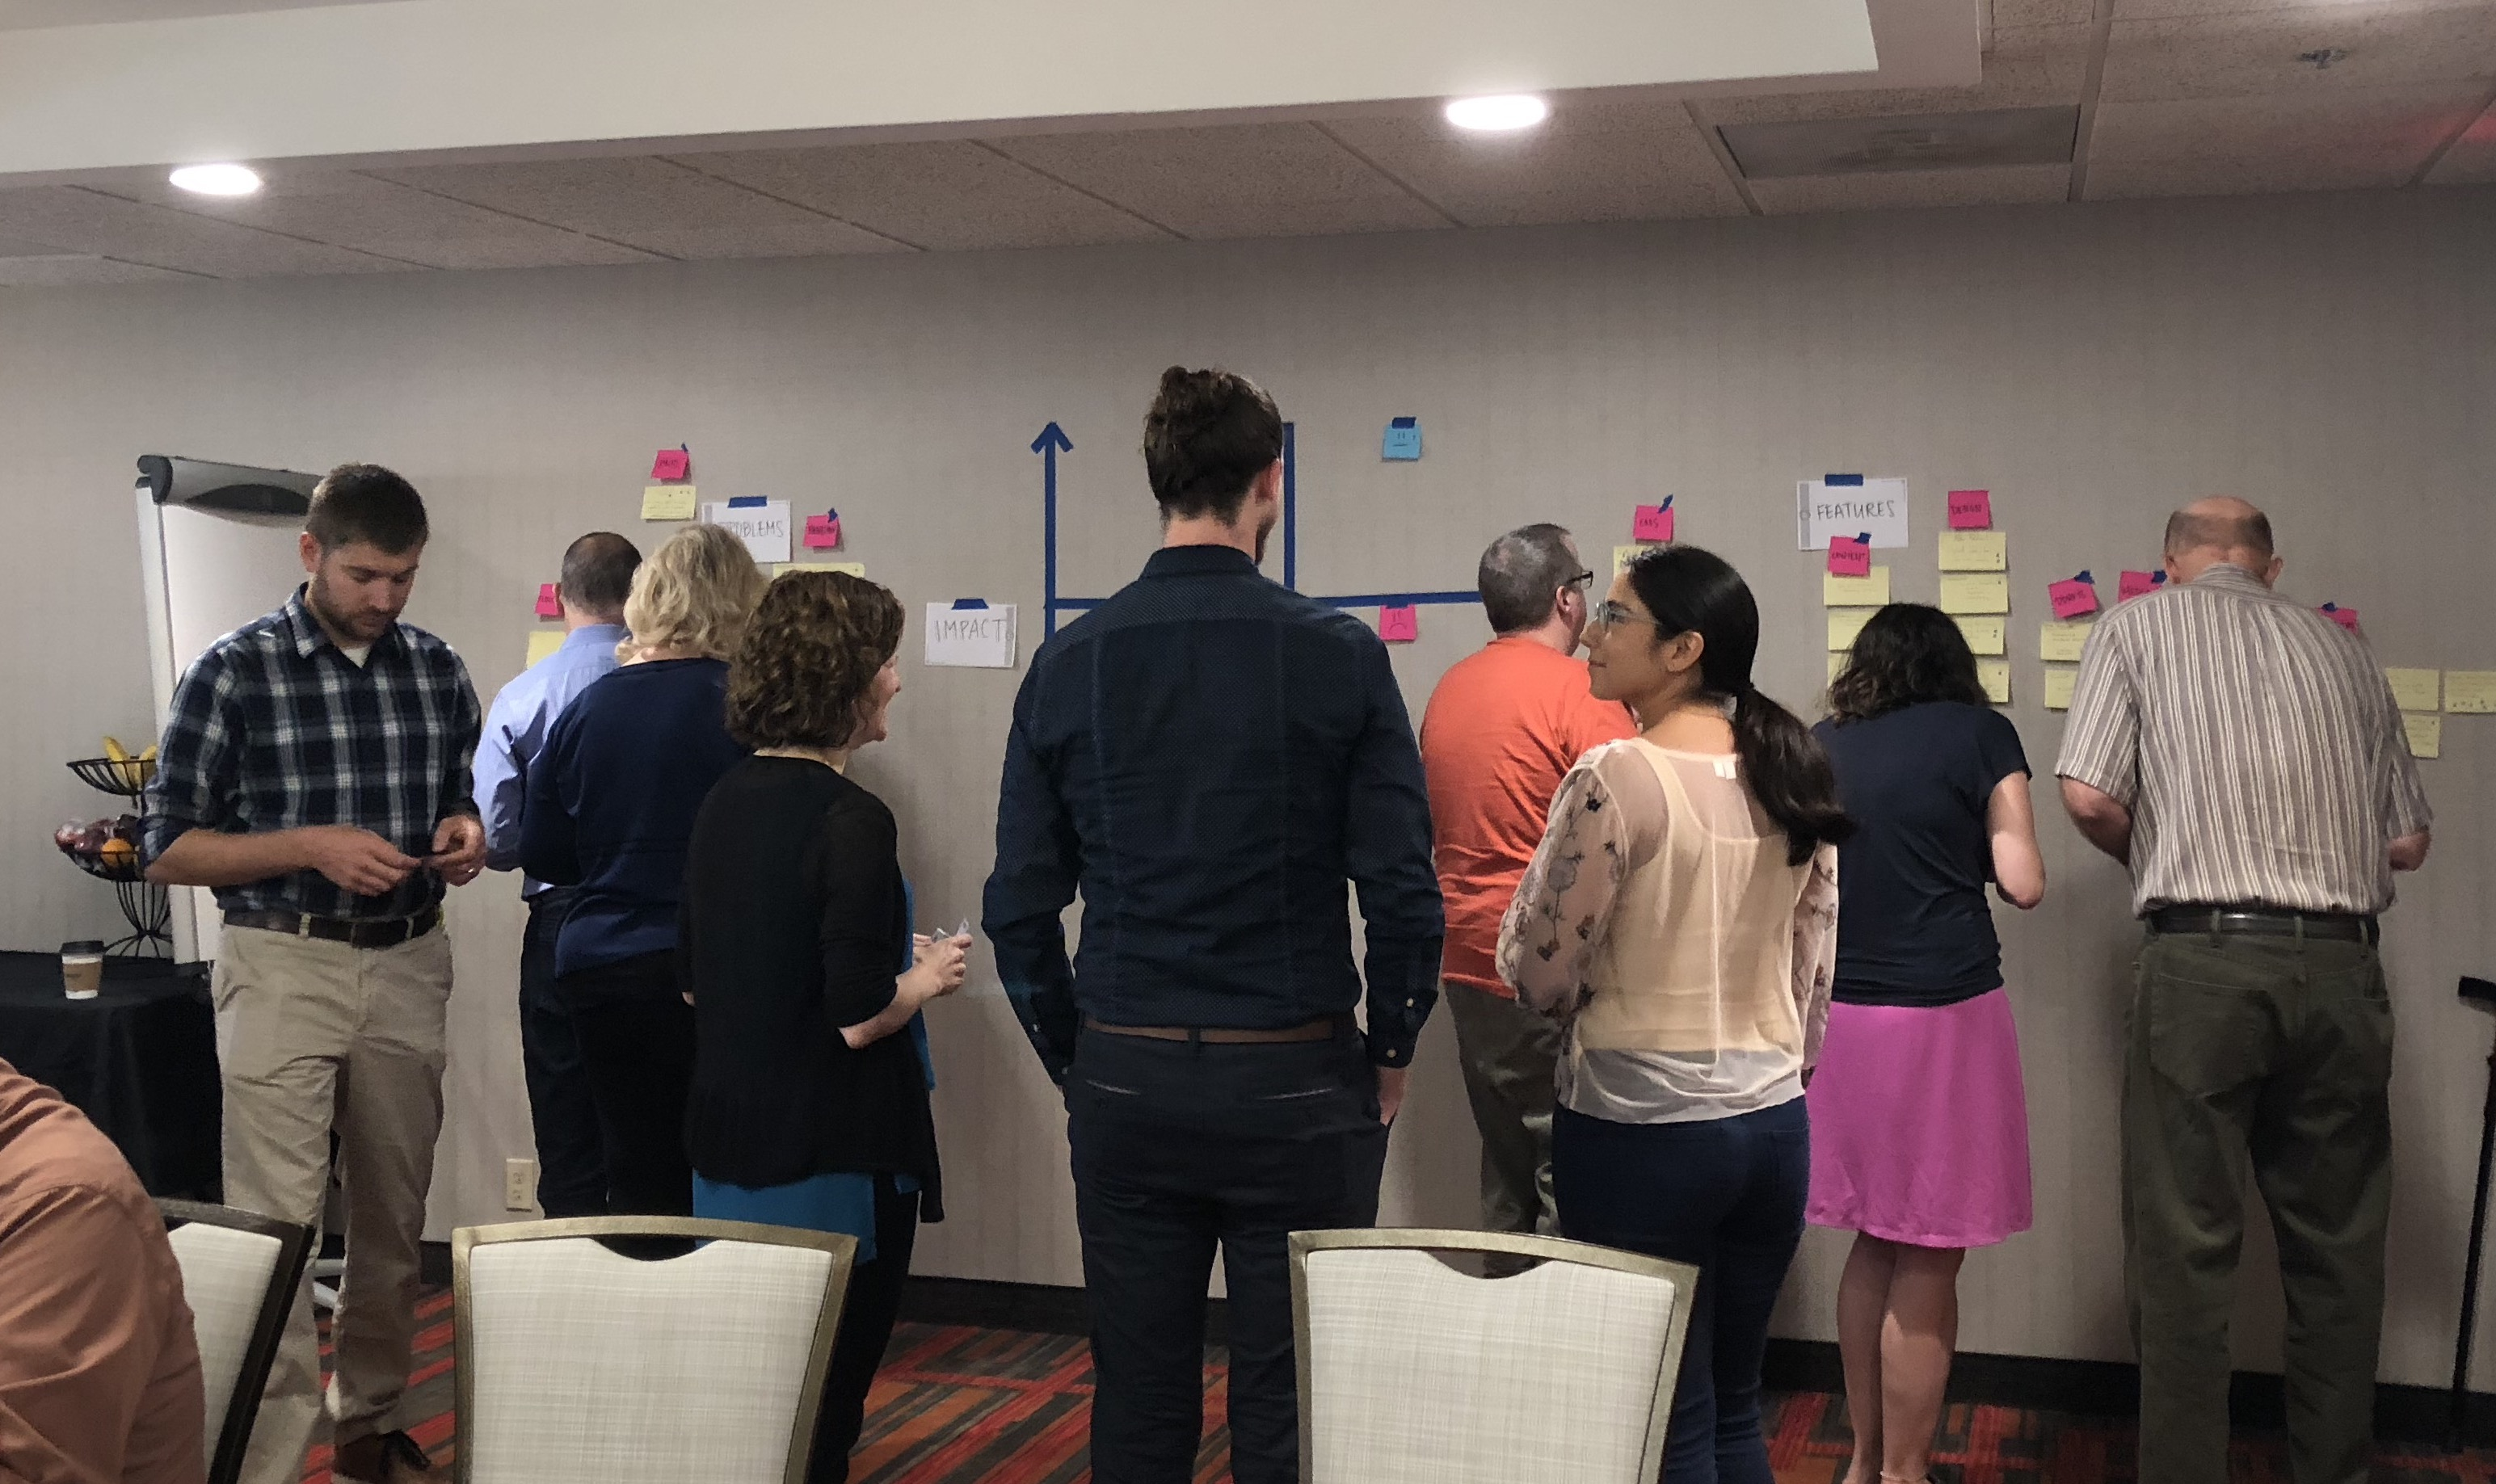 A large group of people looking at a display of post its and tape on the wall of a conference room